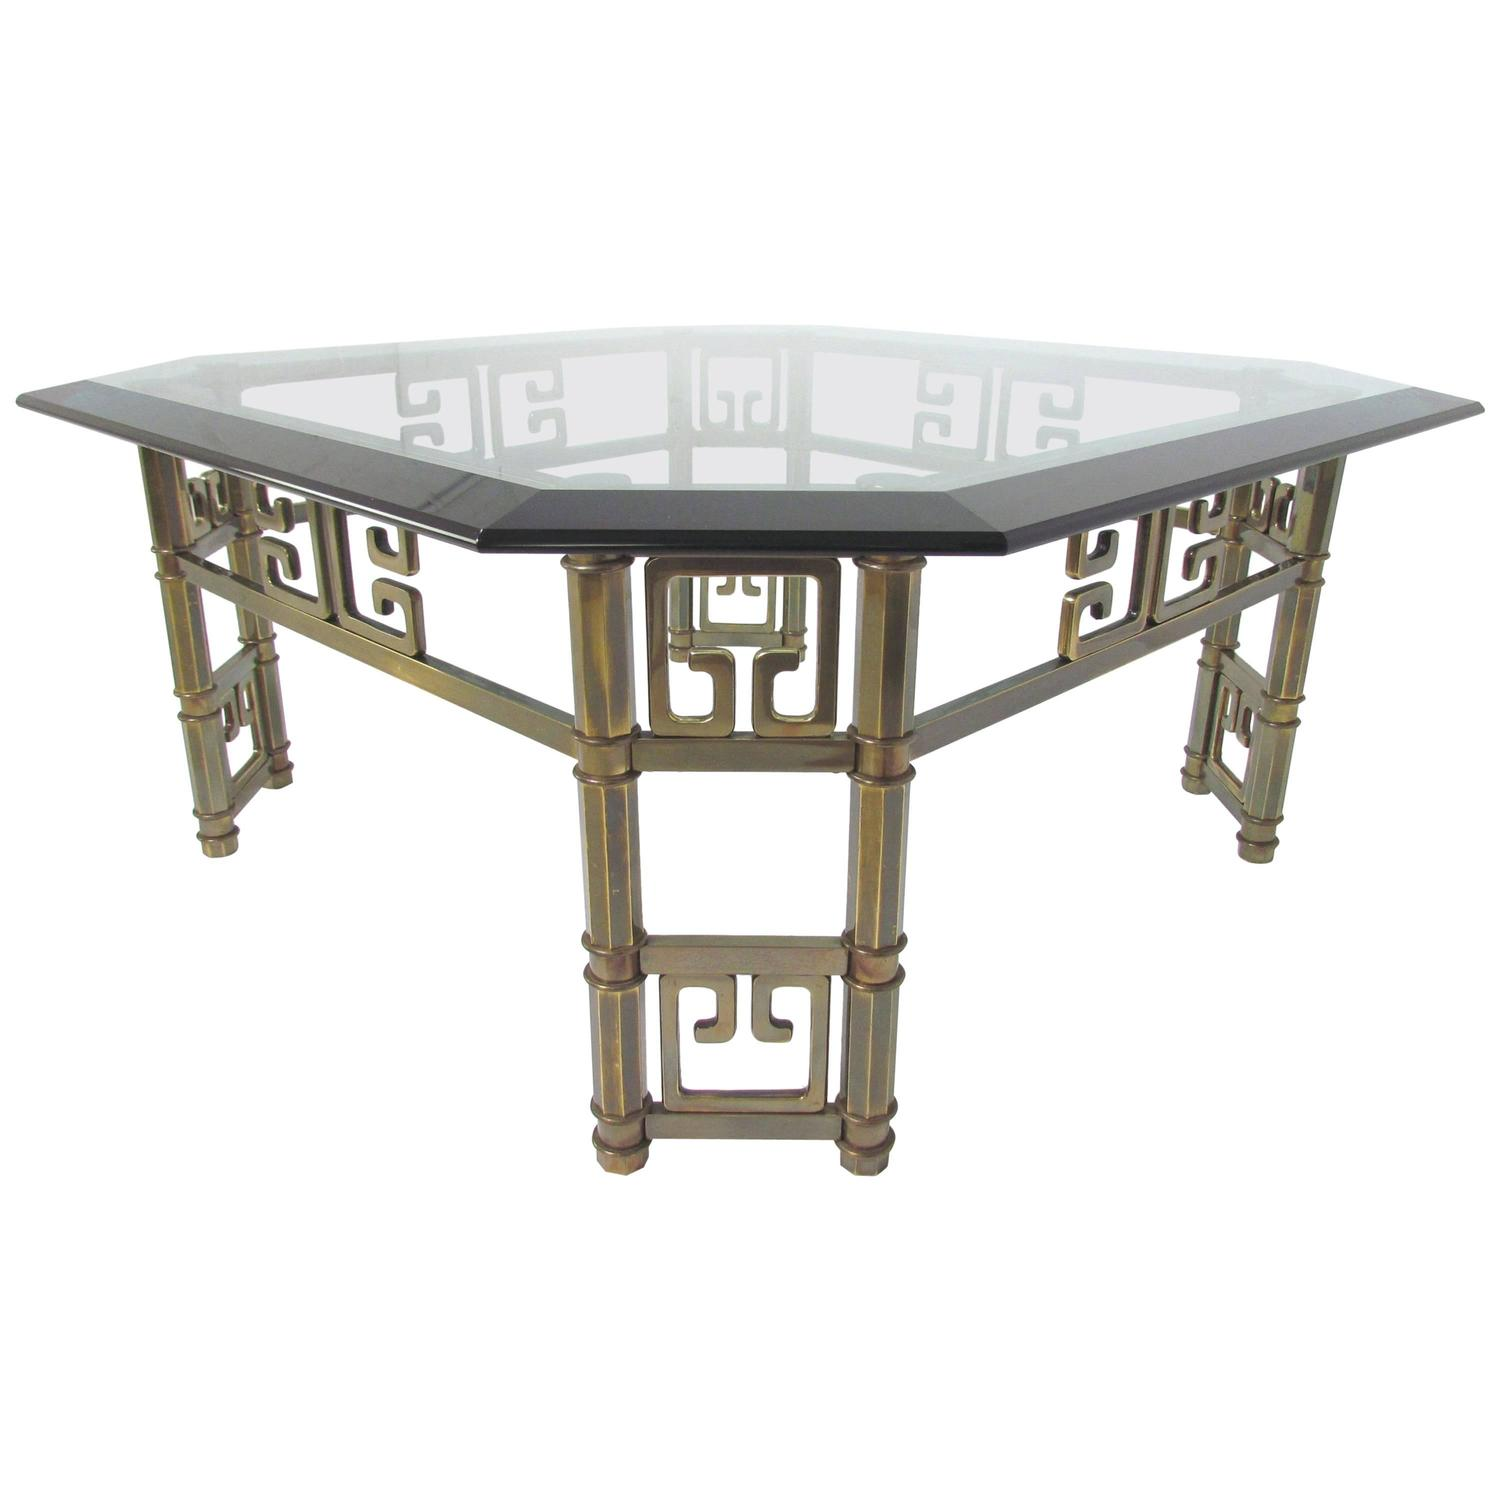 Mastercraft Coffee Table In Brass With Greek Key Motif And